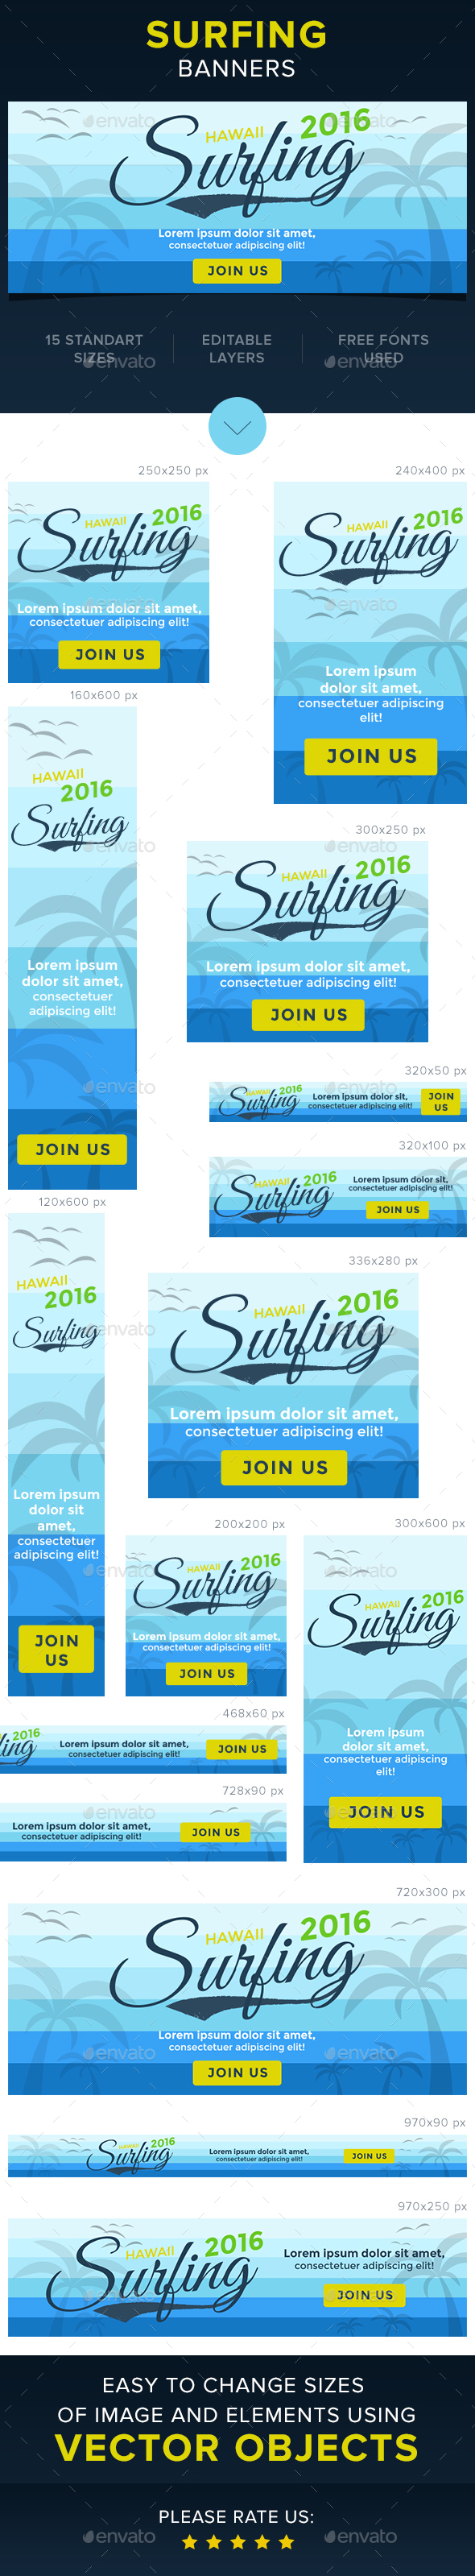 Surfing Banners - Banners & Ads Web Elements